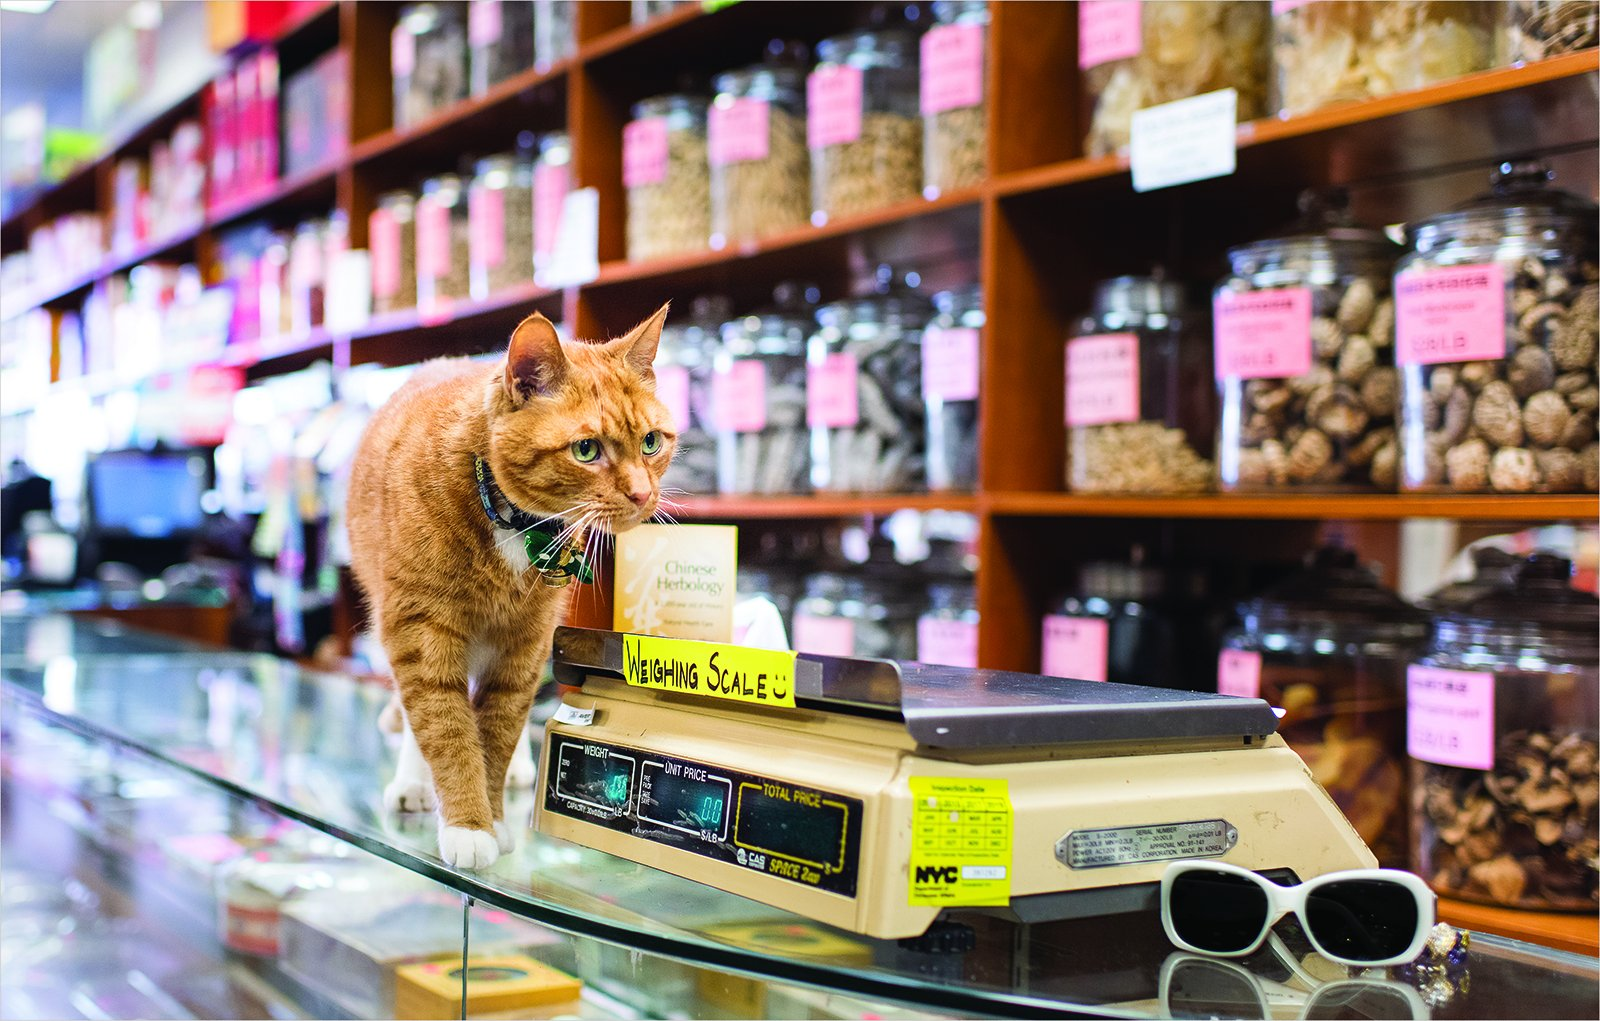 Andrew Marttilaの写真集『Shop Cats of New York』